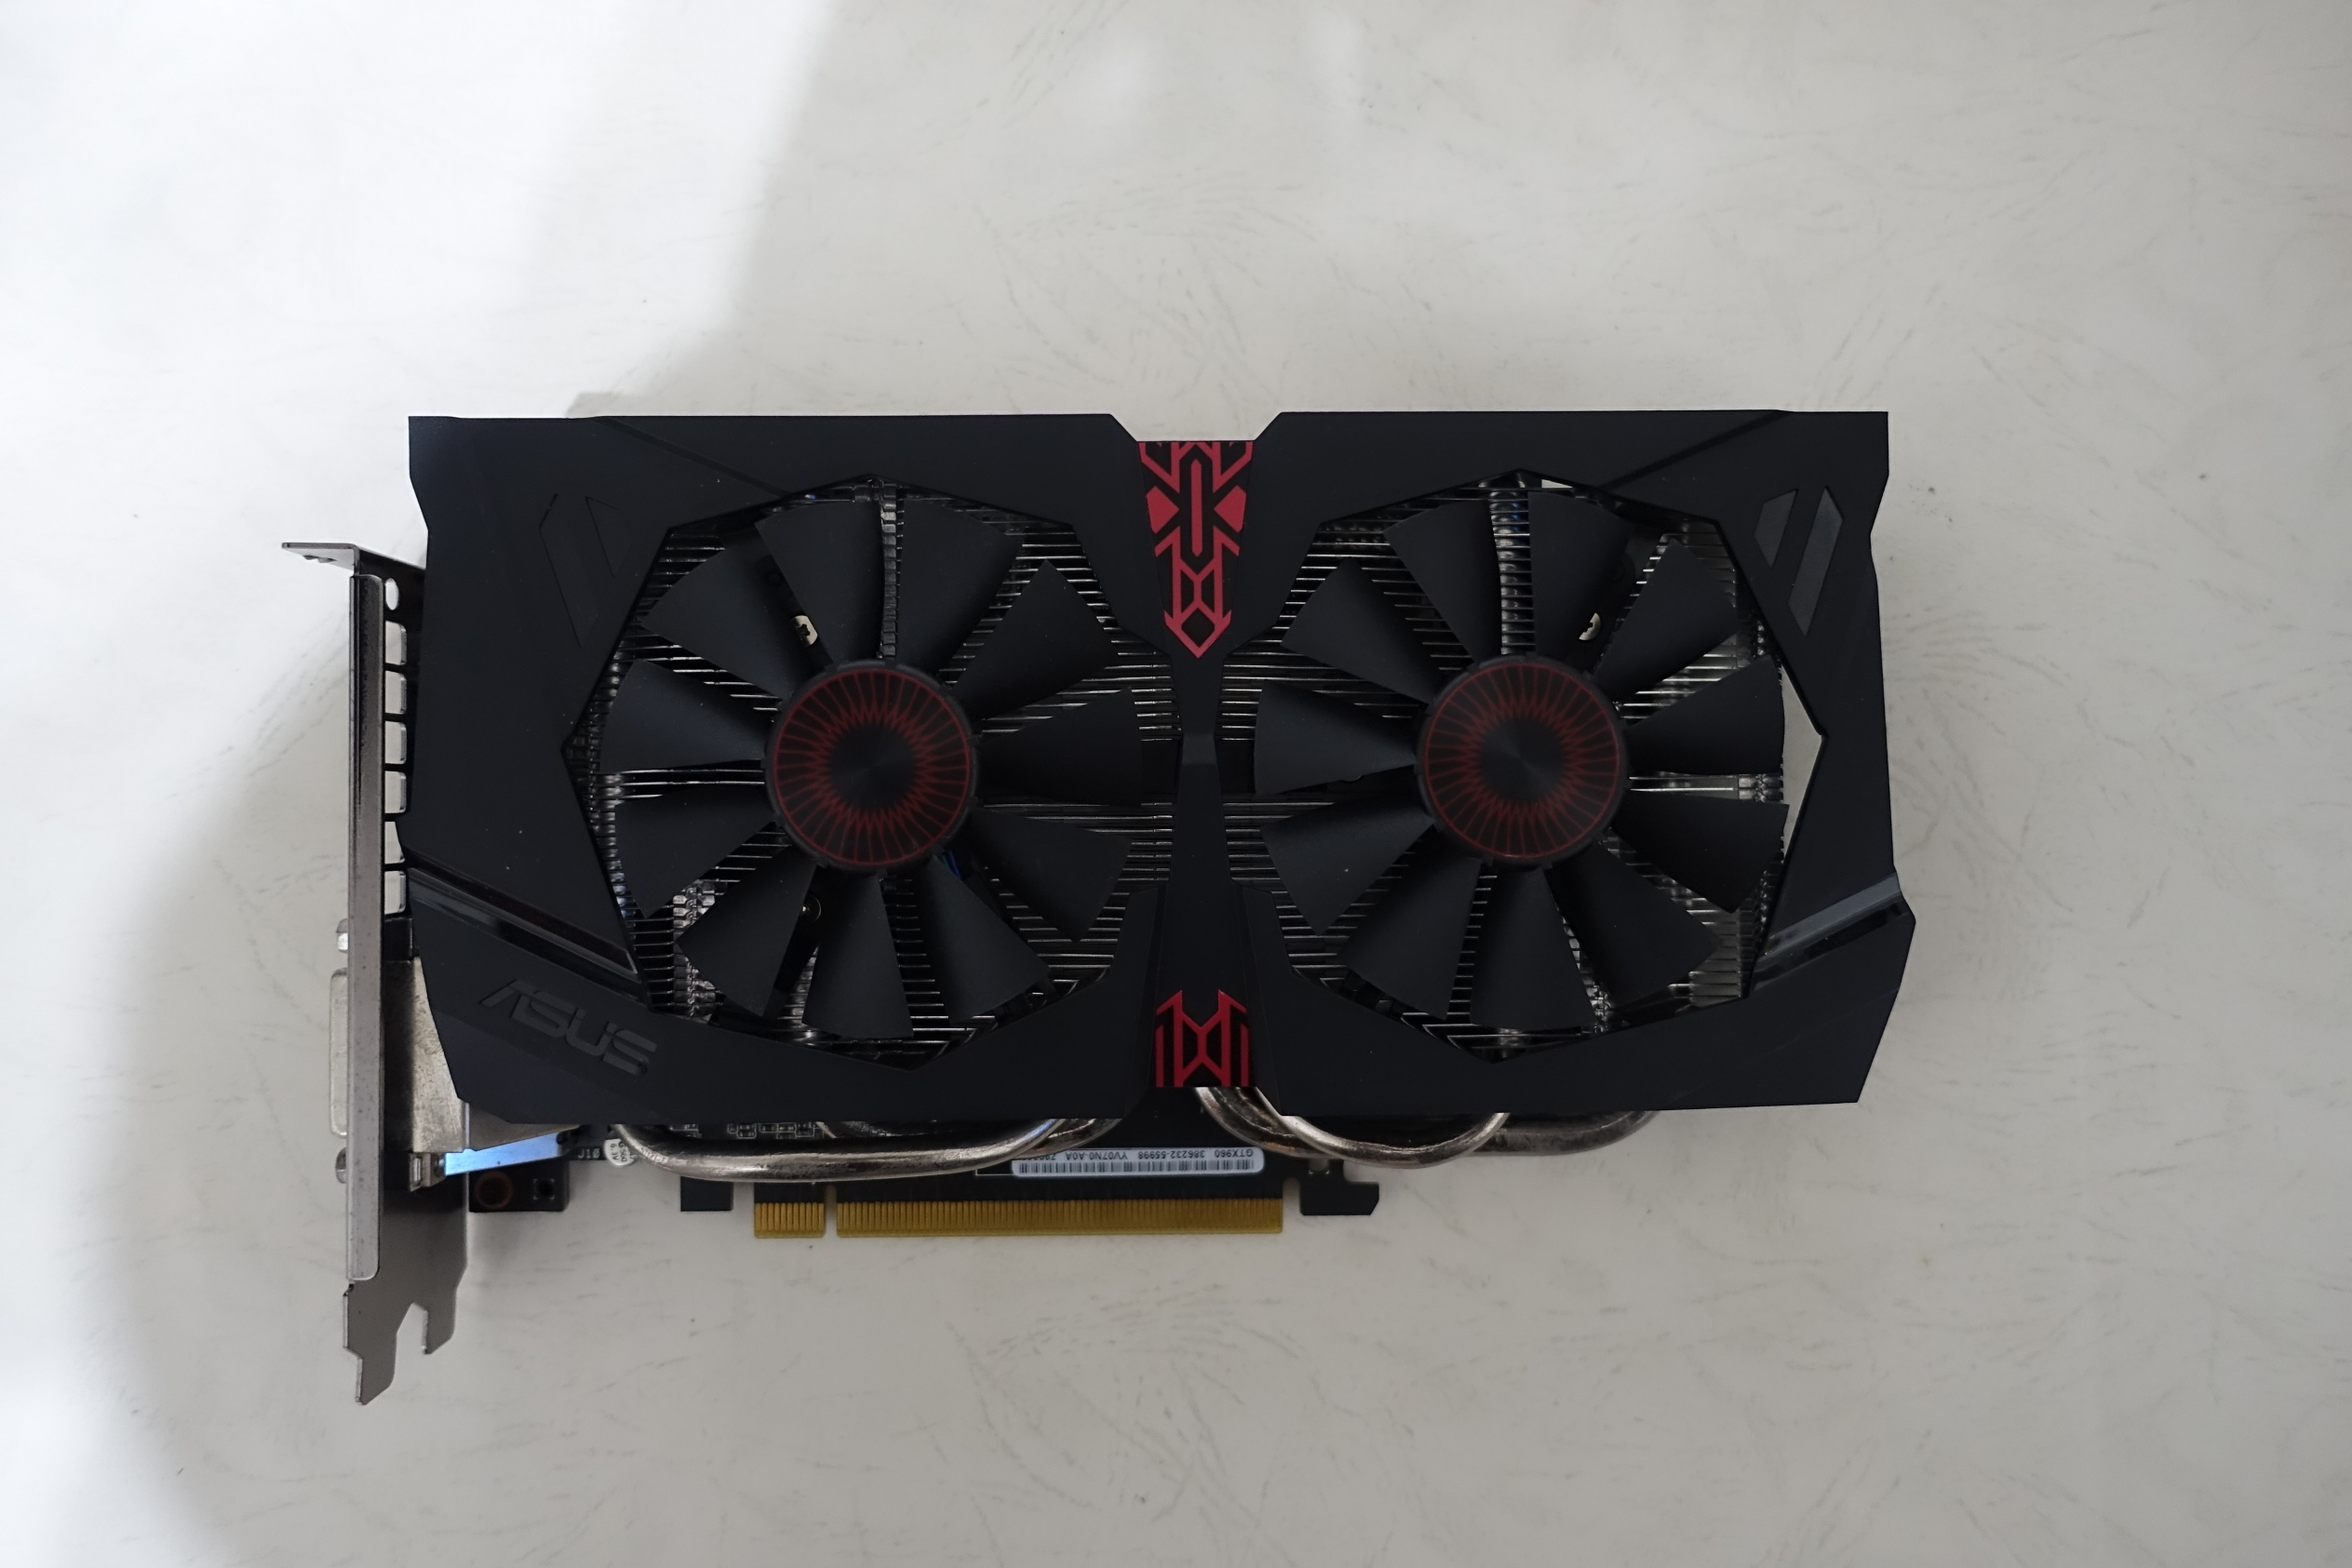 華碩 STRIX GTX960 DC2OC 2GD5 SP GTX 960 2GB GDDR5 潛龍版 HDMI 顯示卡